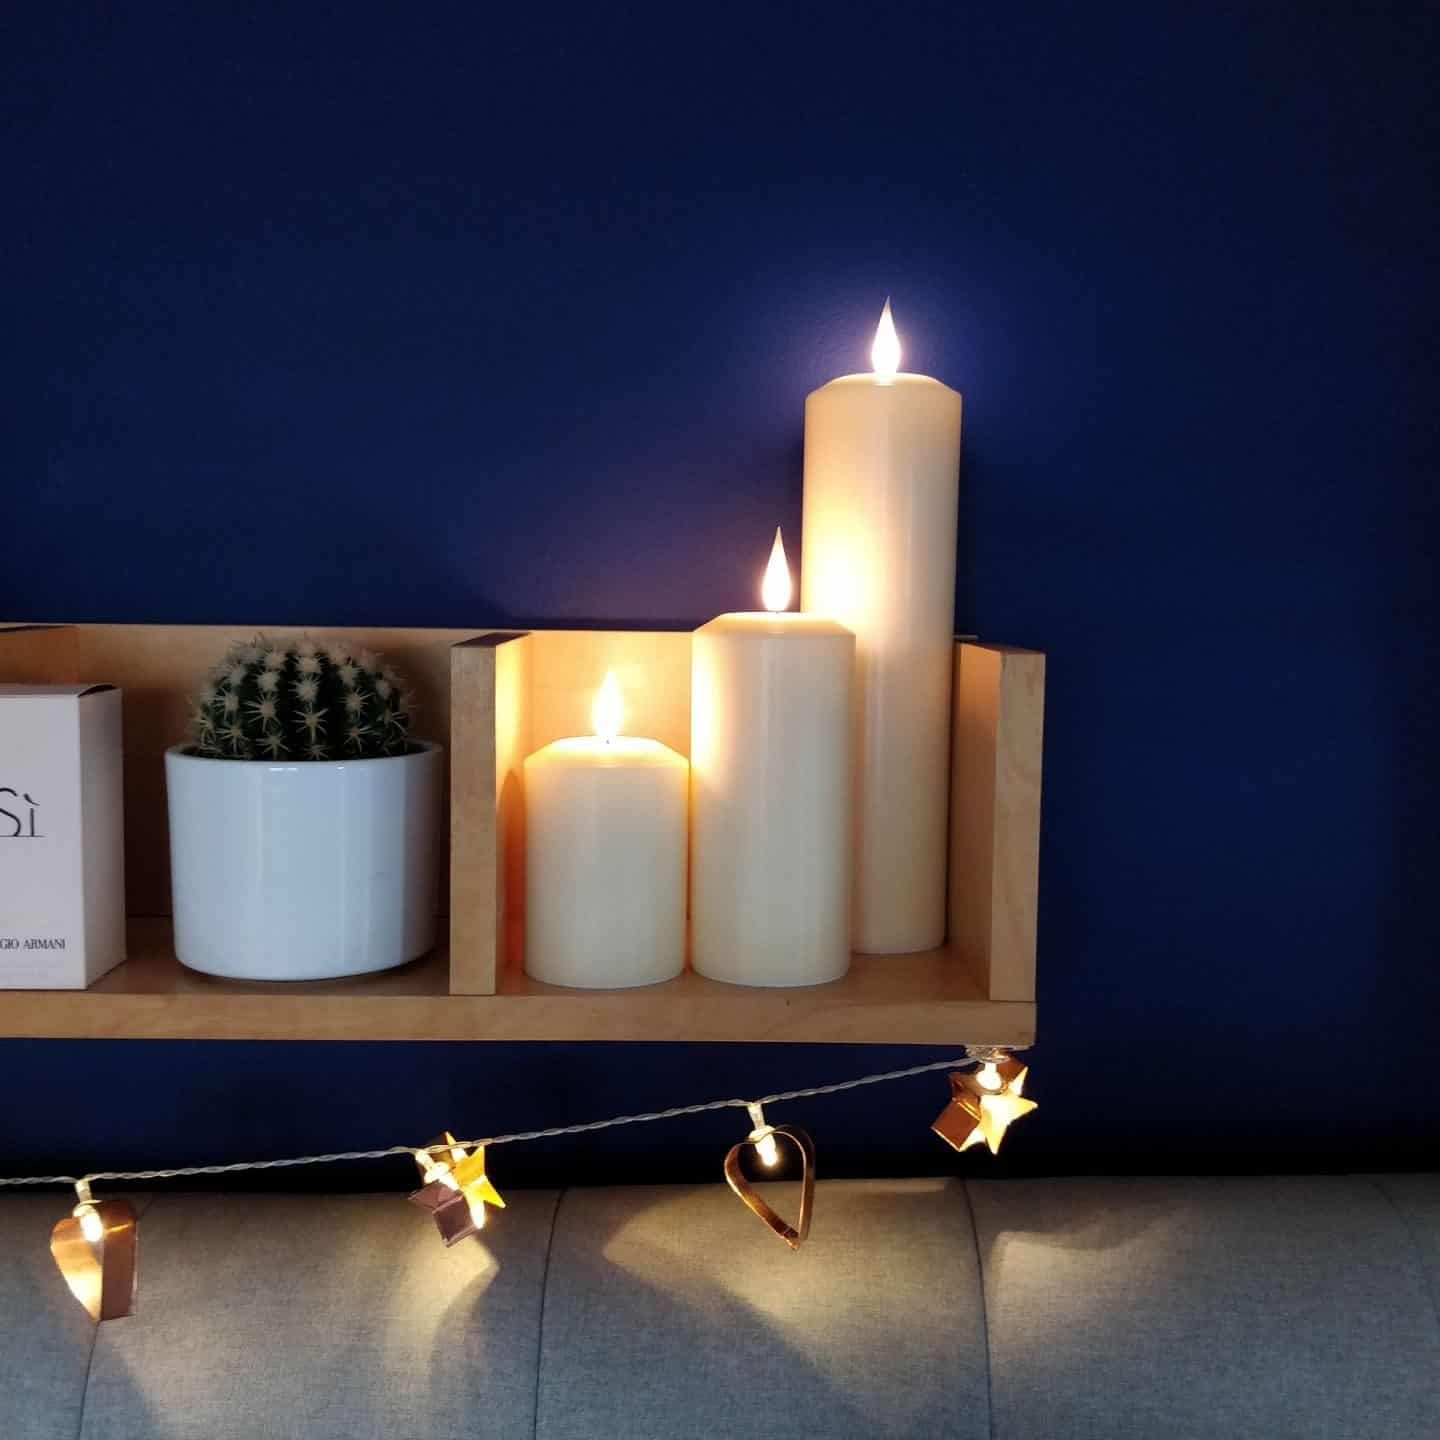 Realistic LED candles from Candled on a bedroom shelf 5